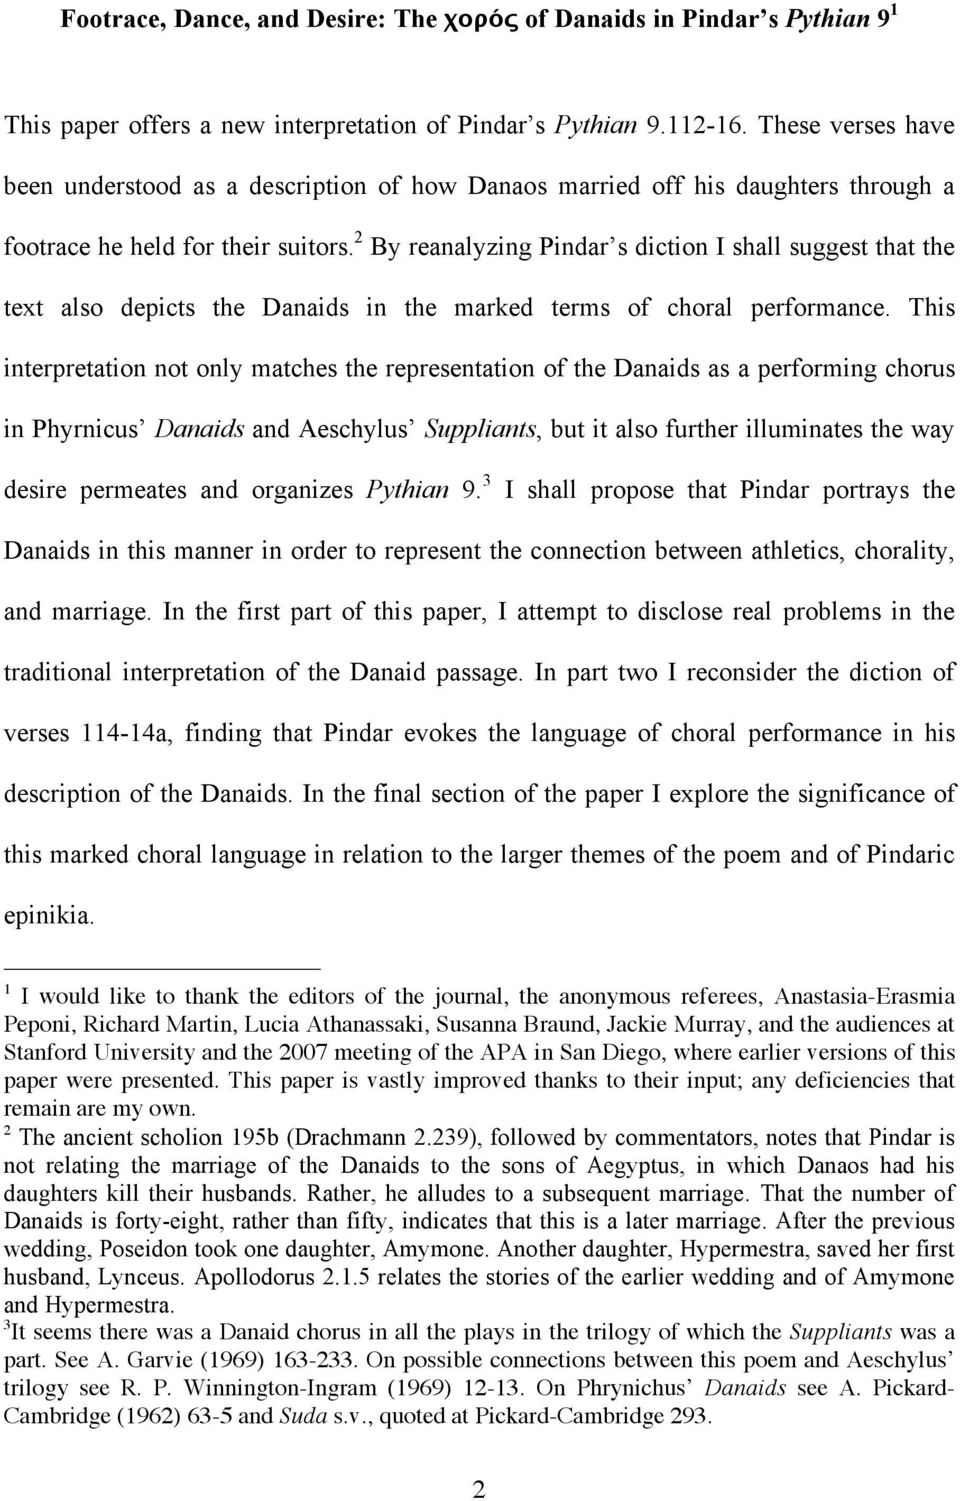 2 By reanalyzing Pindar s diction I shall suggest that the text also depicts the Danaids in the marked terms of choral performance.